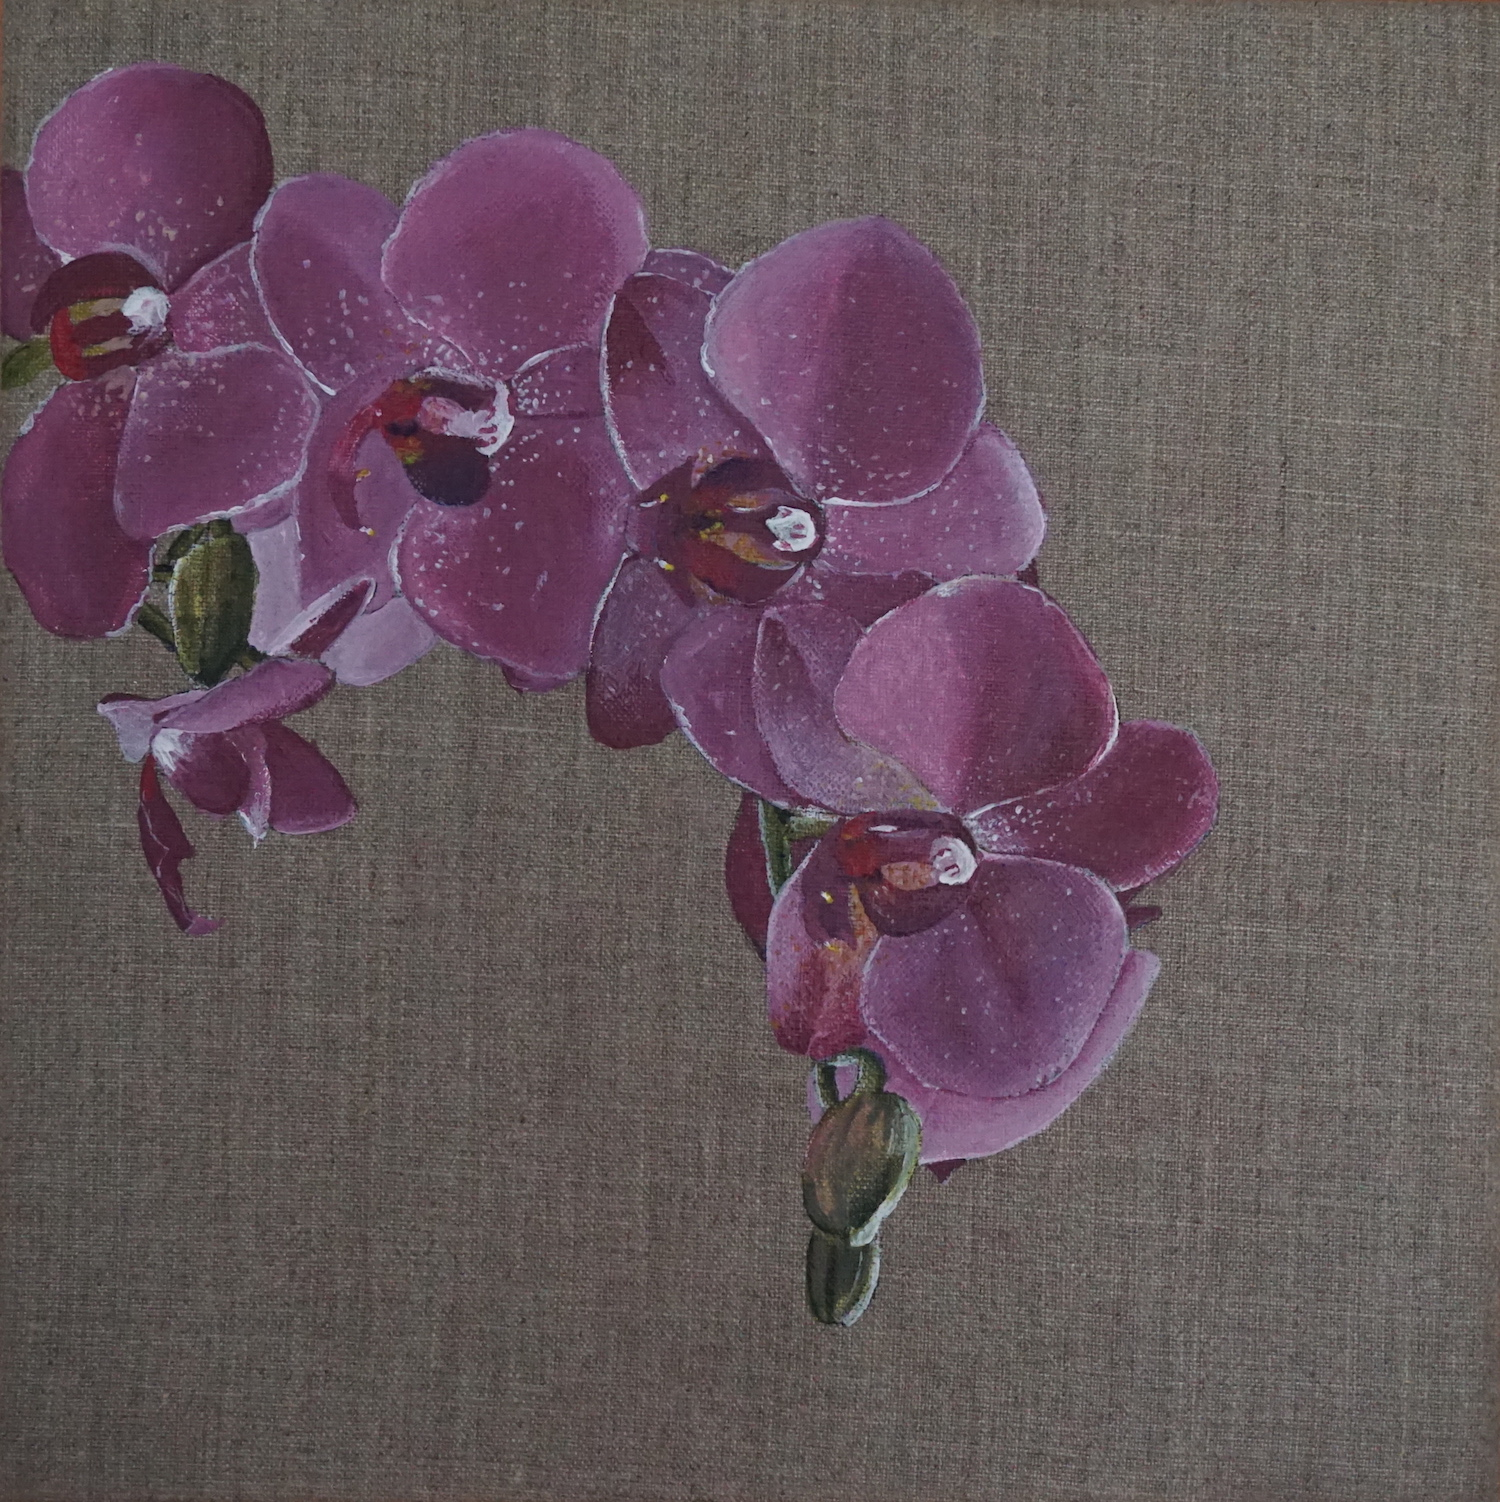 Raw Orchids, 2017